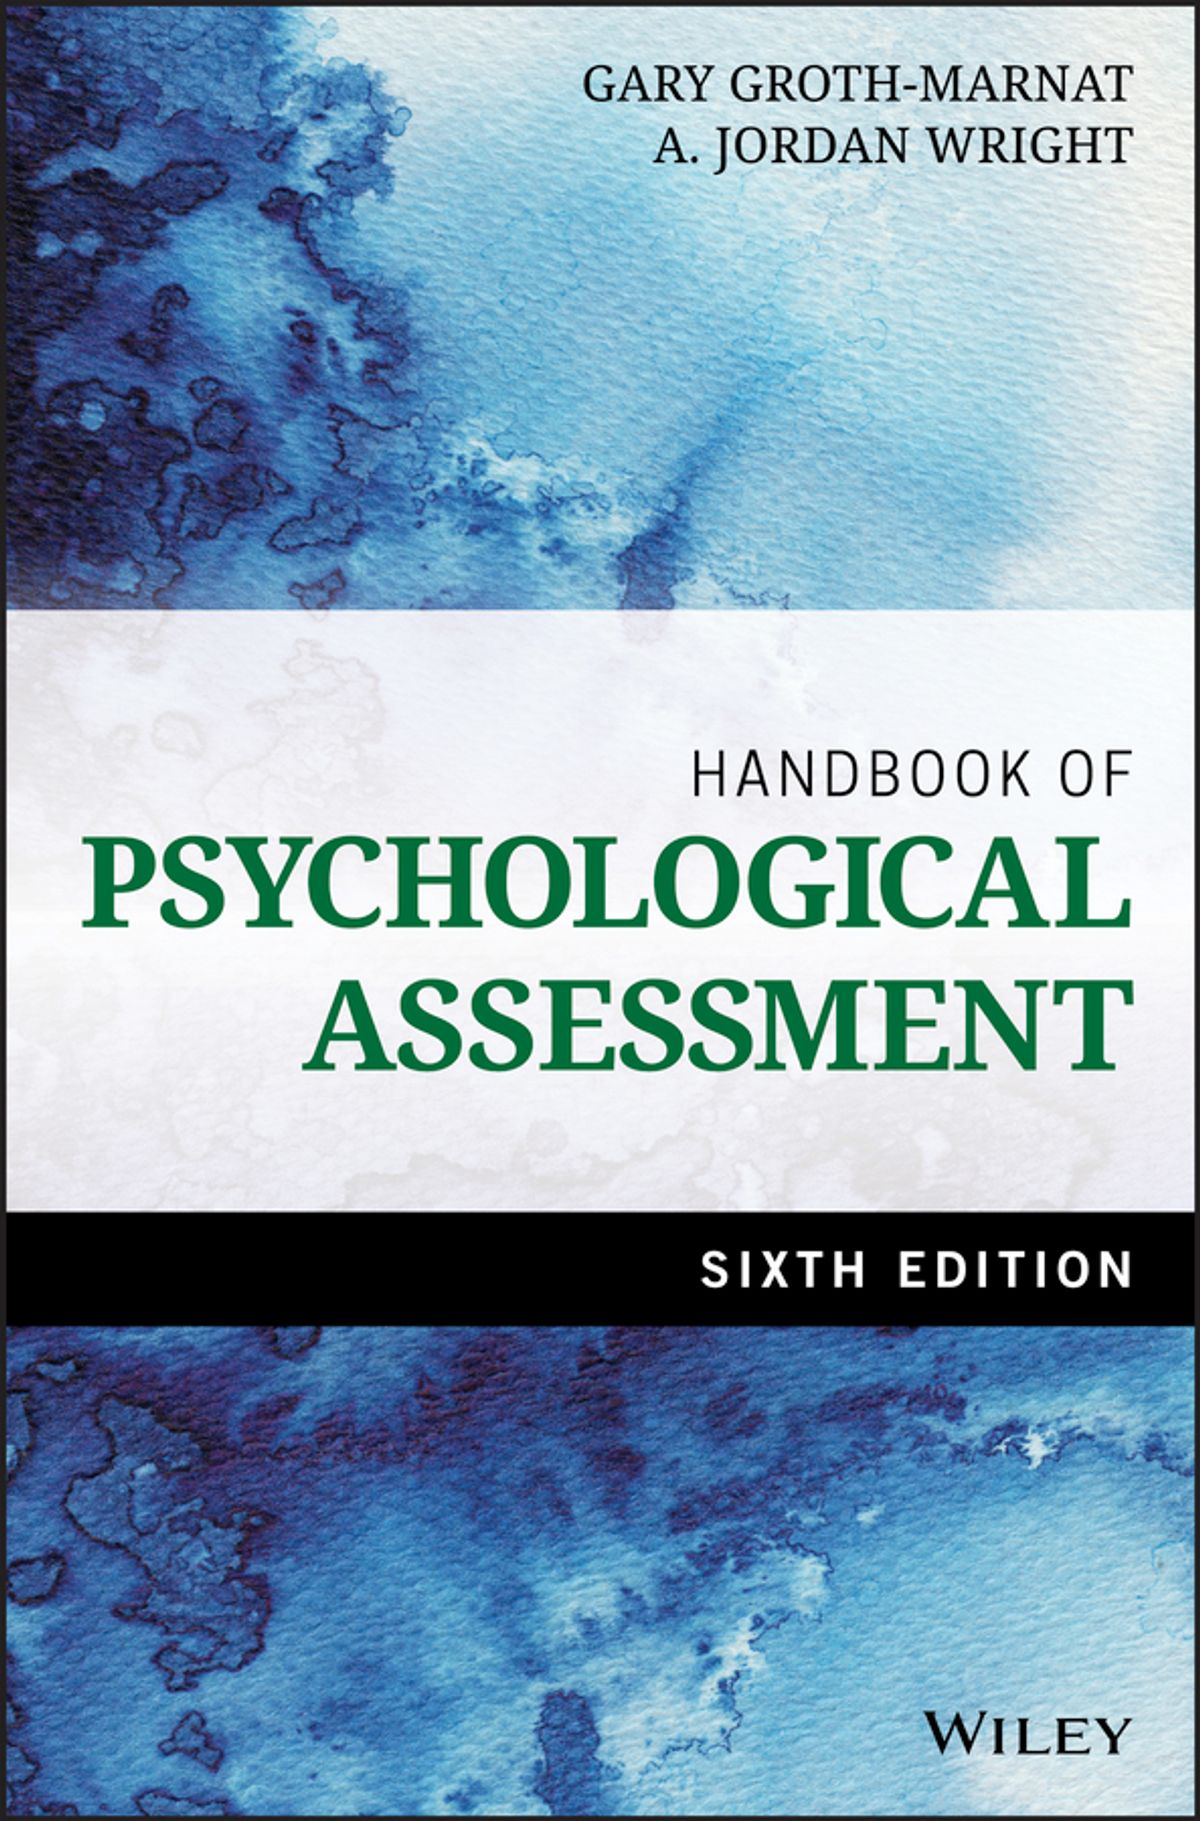 Psychological Assessment 6E by Gary Groth-Marnat, ISBN: 9781118960653